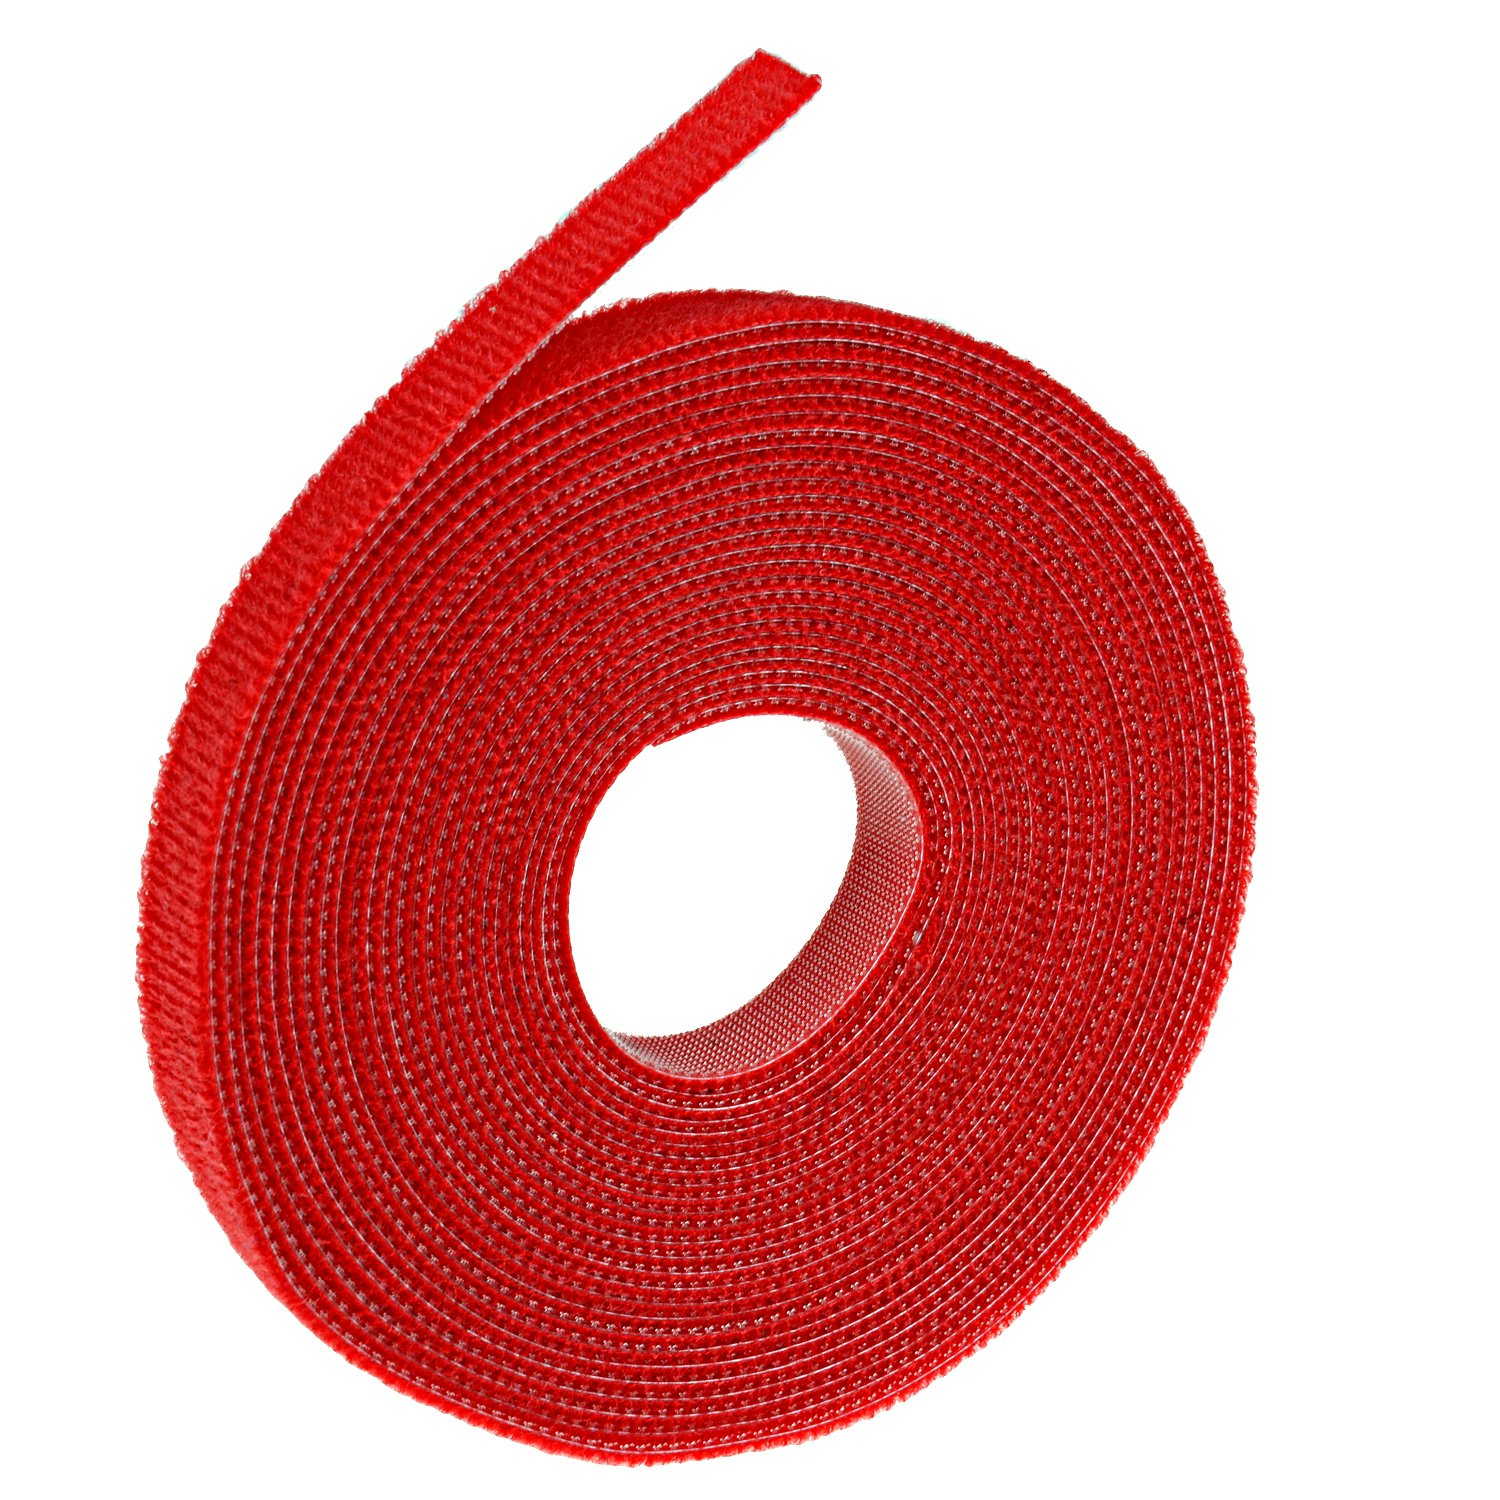 Oldhill Fastening Tapes Hook and Loop Reusable Straps Wires Cords Cable Ties - 1/2 Width, 15' x 3 Rolls (Green) 15' x 3 Rolls (Green)